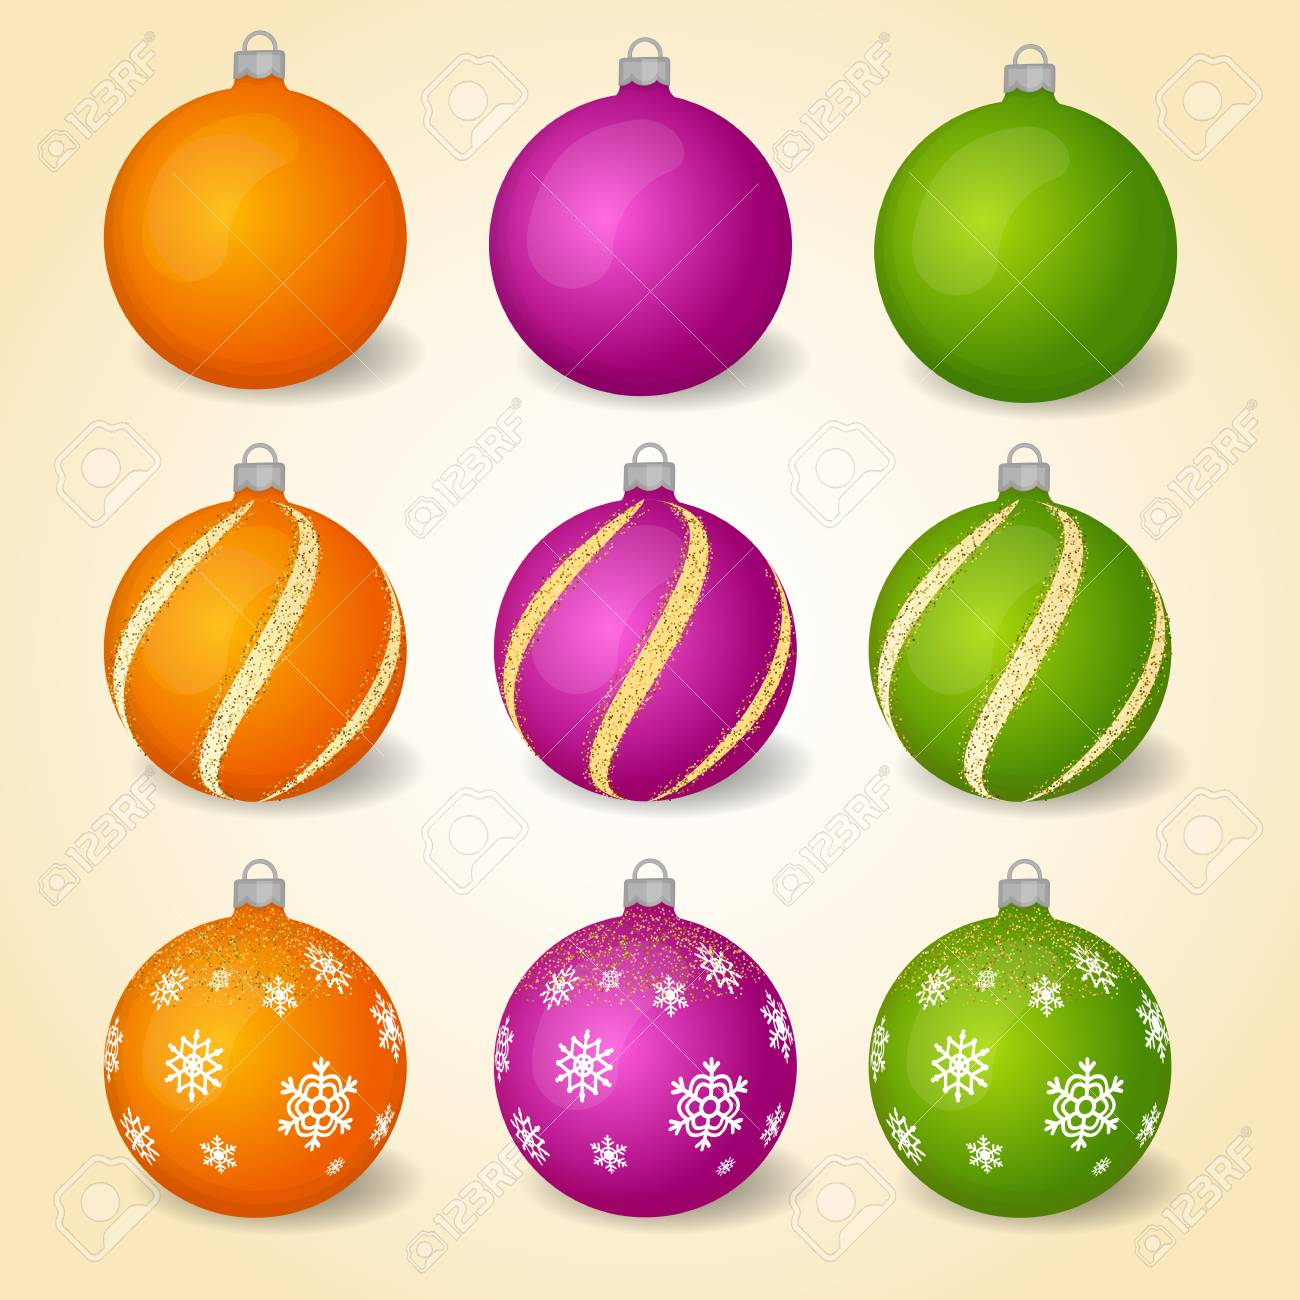 Colorful Christmas Balls.Colorful Christmas Balls With Different Ornaments Set Of Isolated